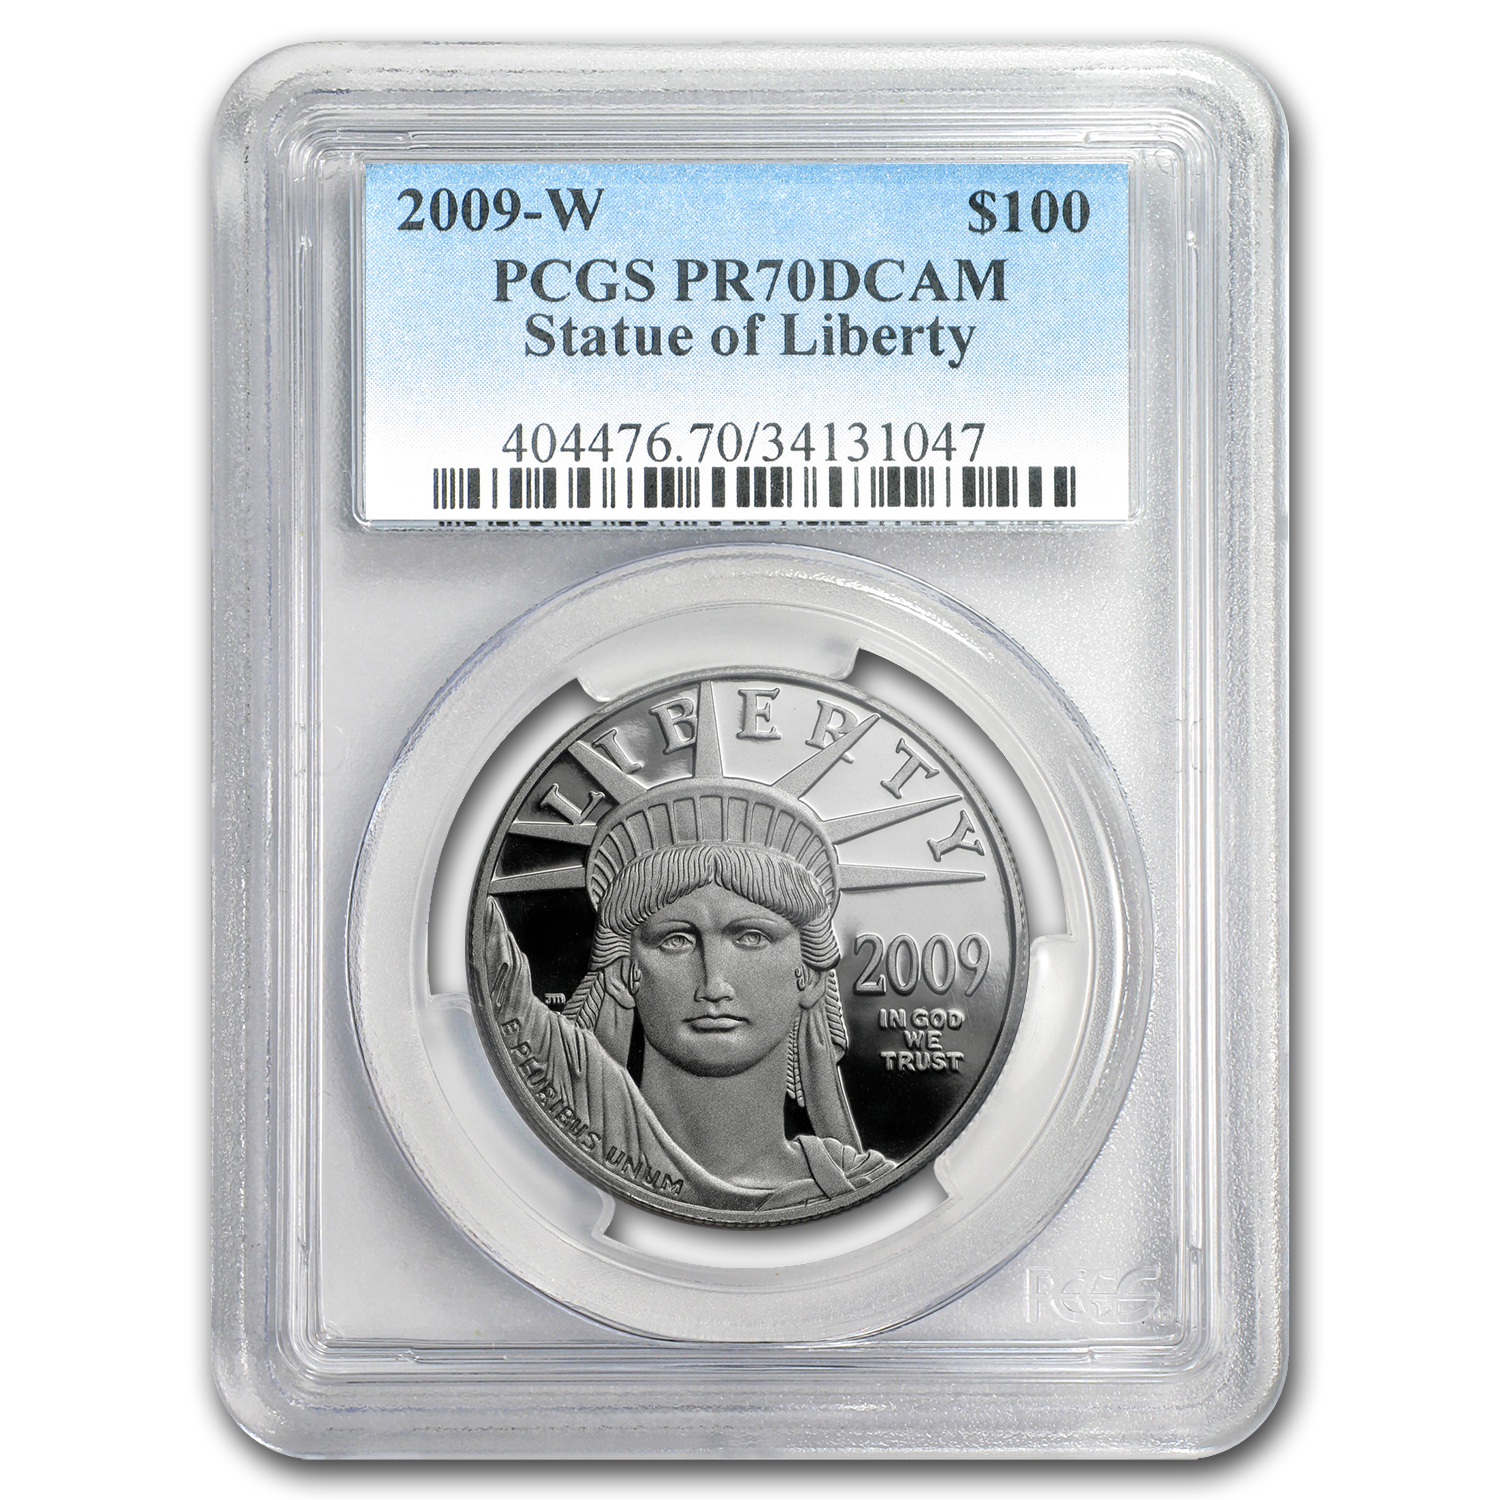 2009-W 1 oz Proof Platinum American Eagle PR-70 PCGS